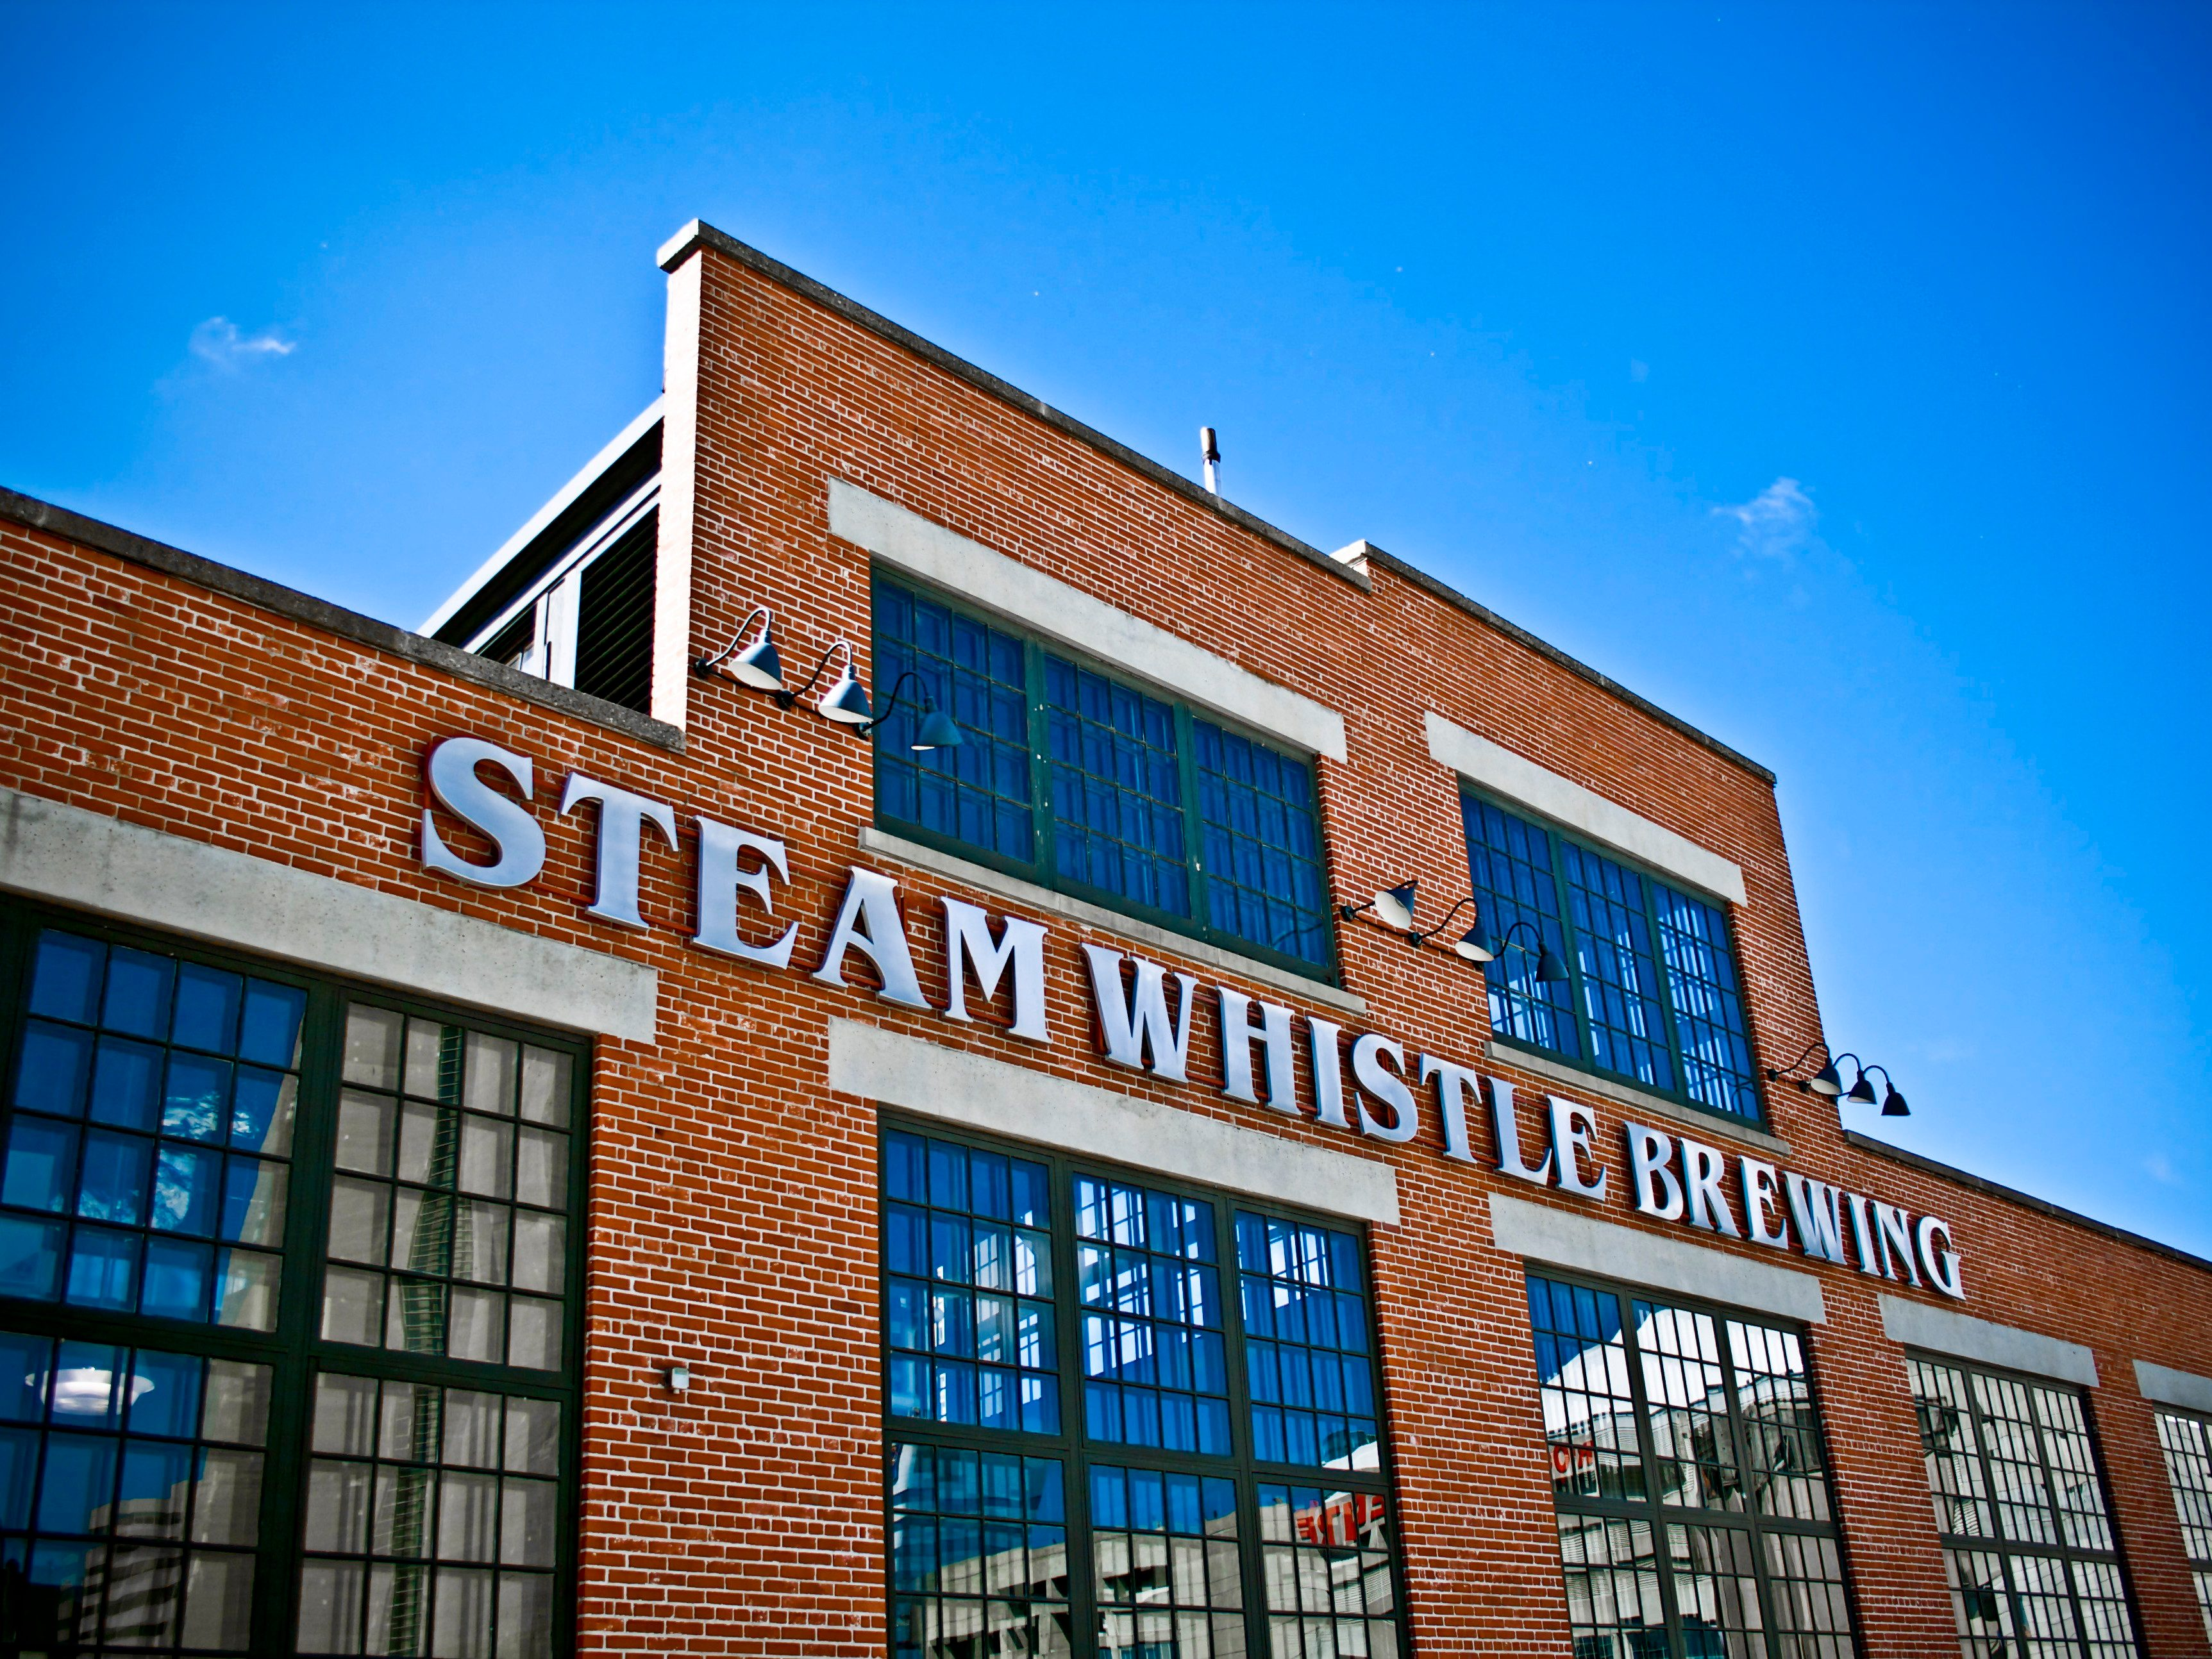 19. Steam Whistle Brewery